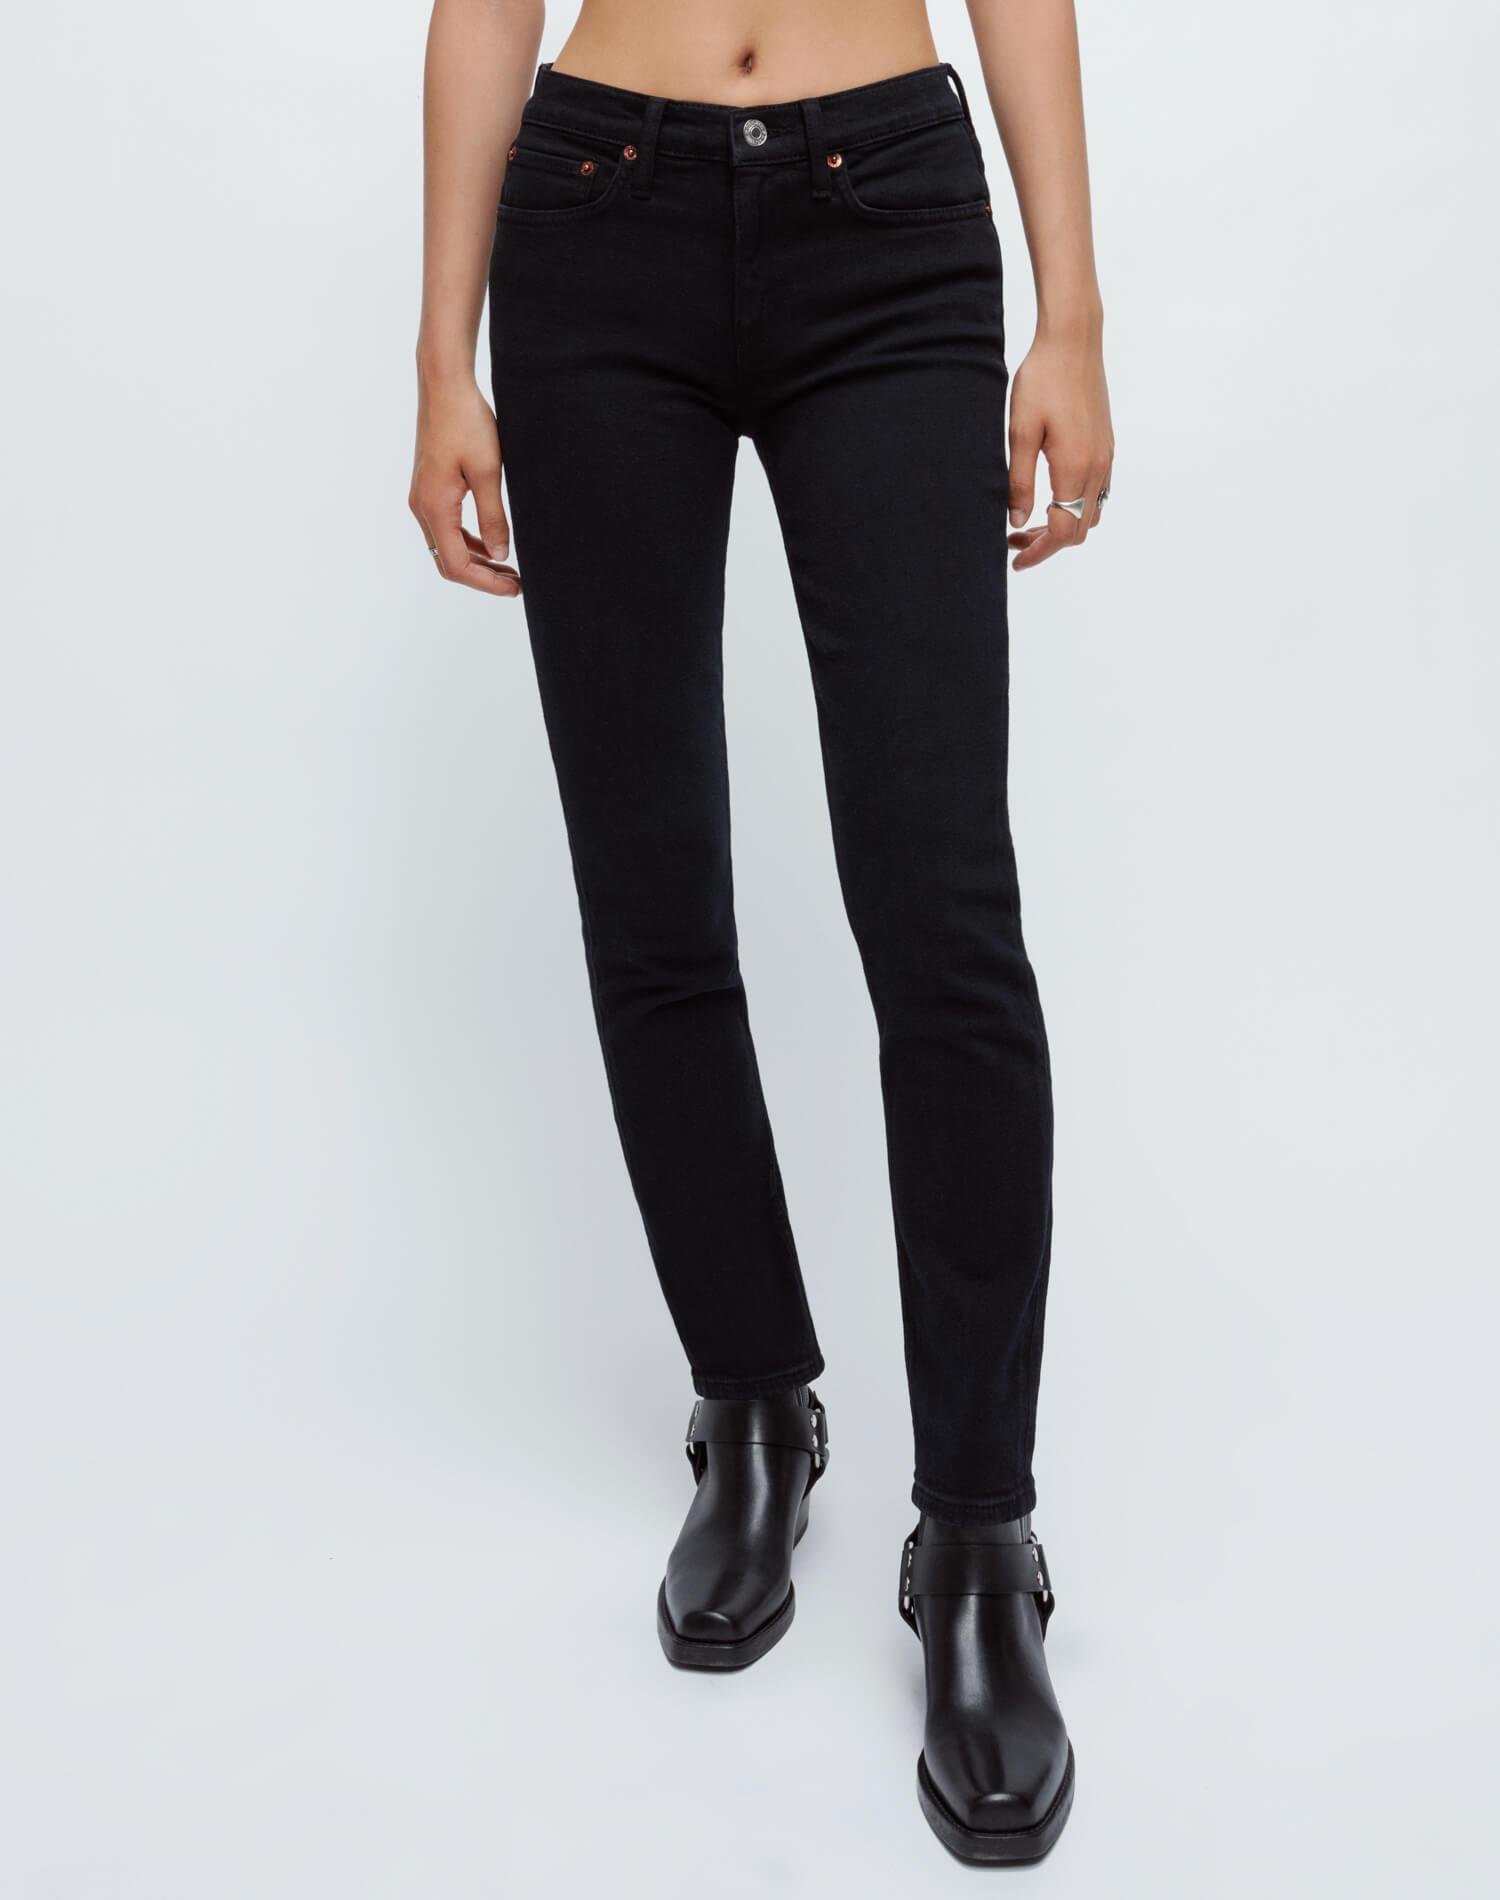 Extra Stretch Mid Rise Ankle Crop - Jet Blue Black